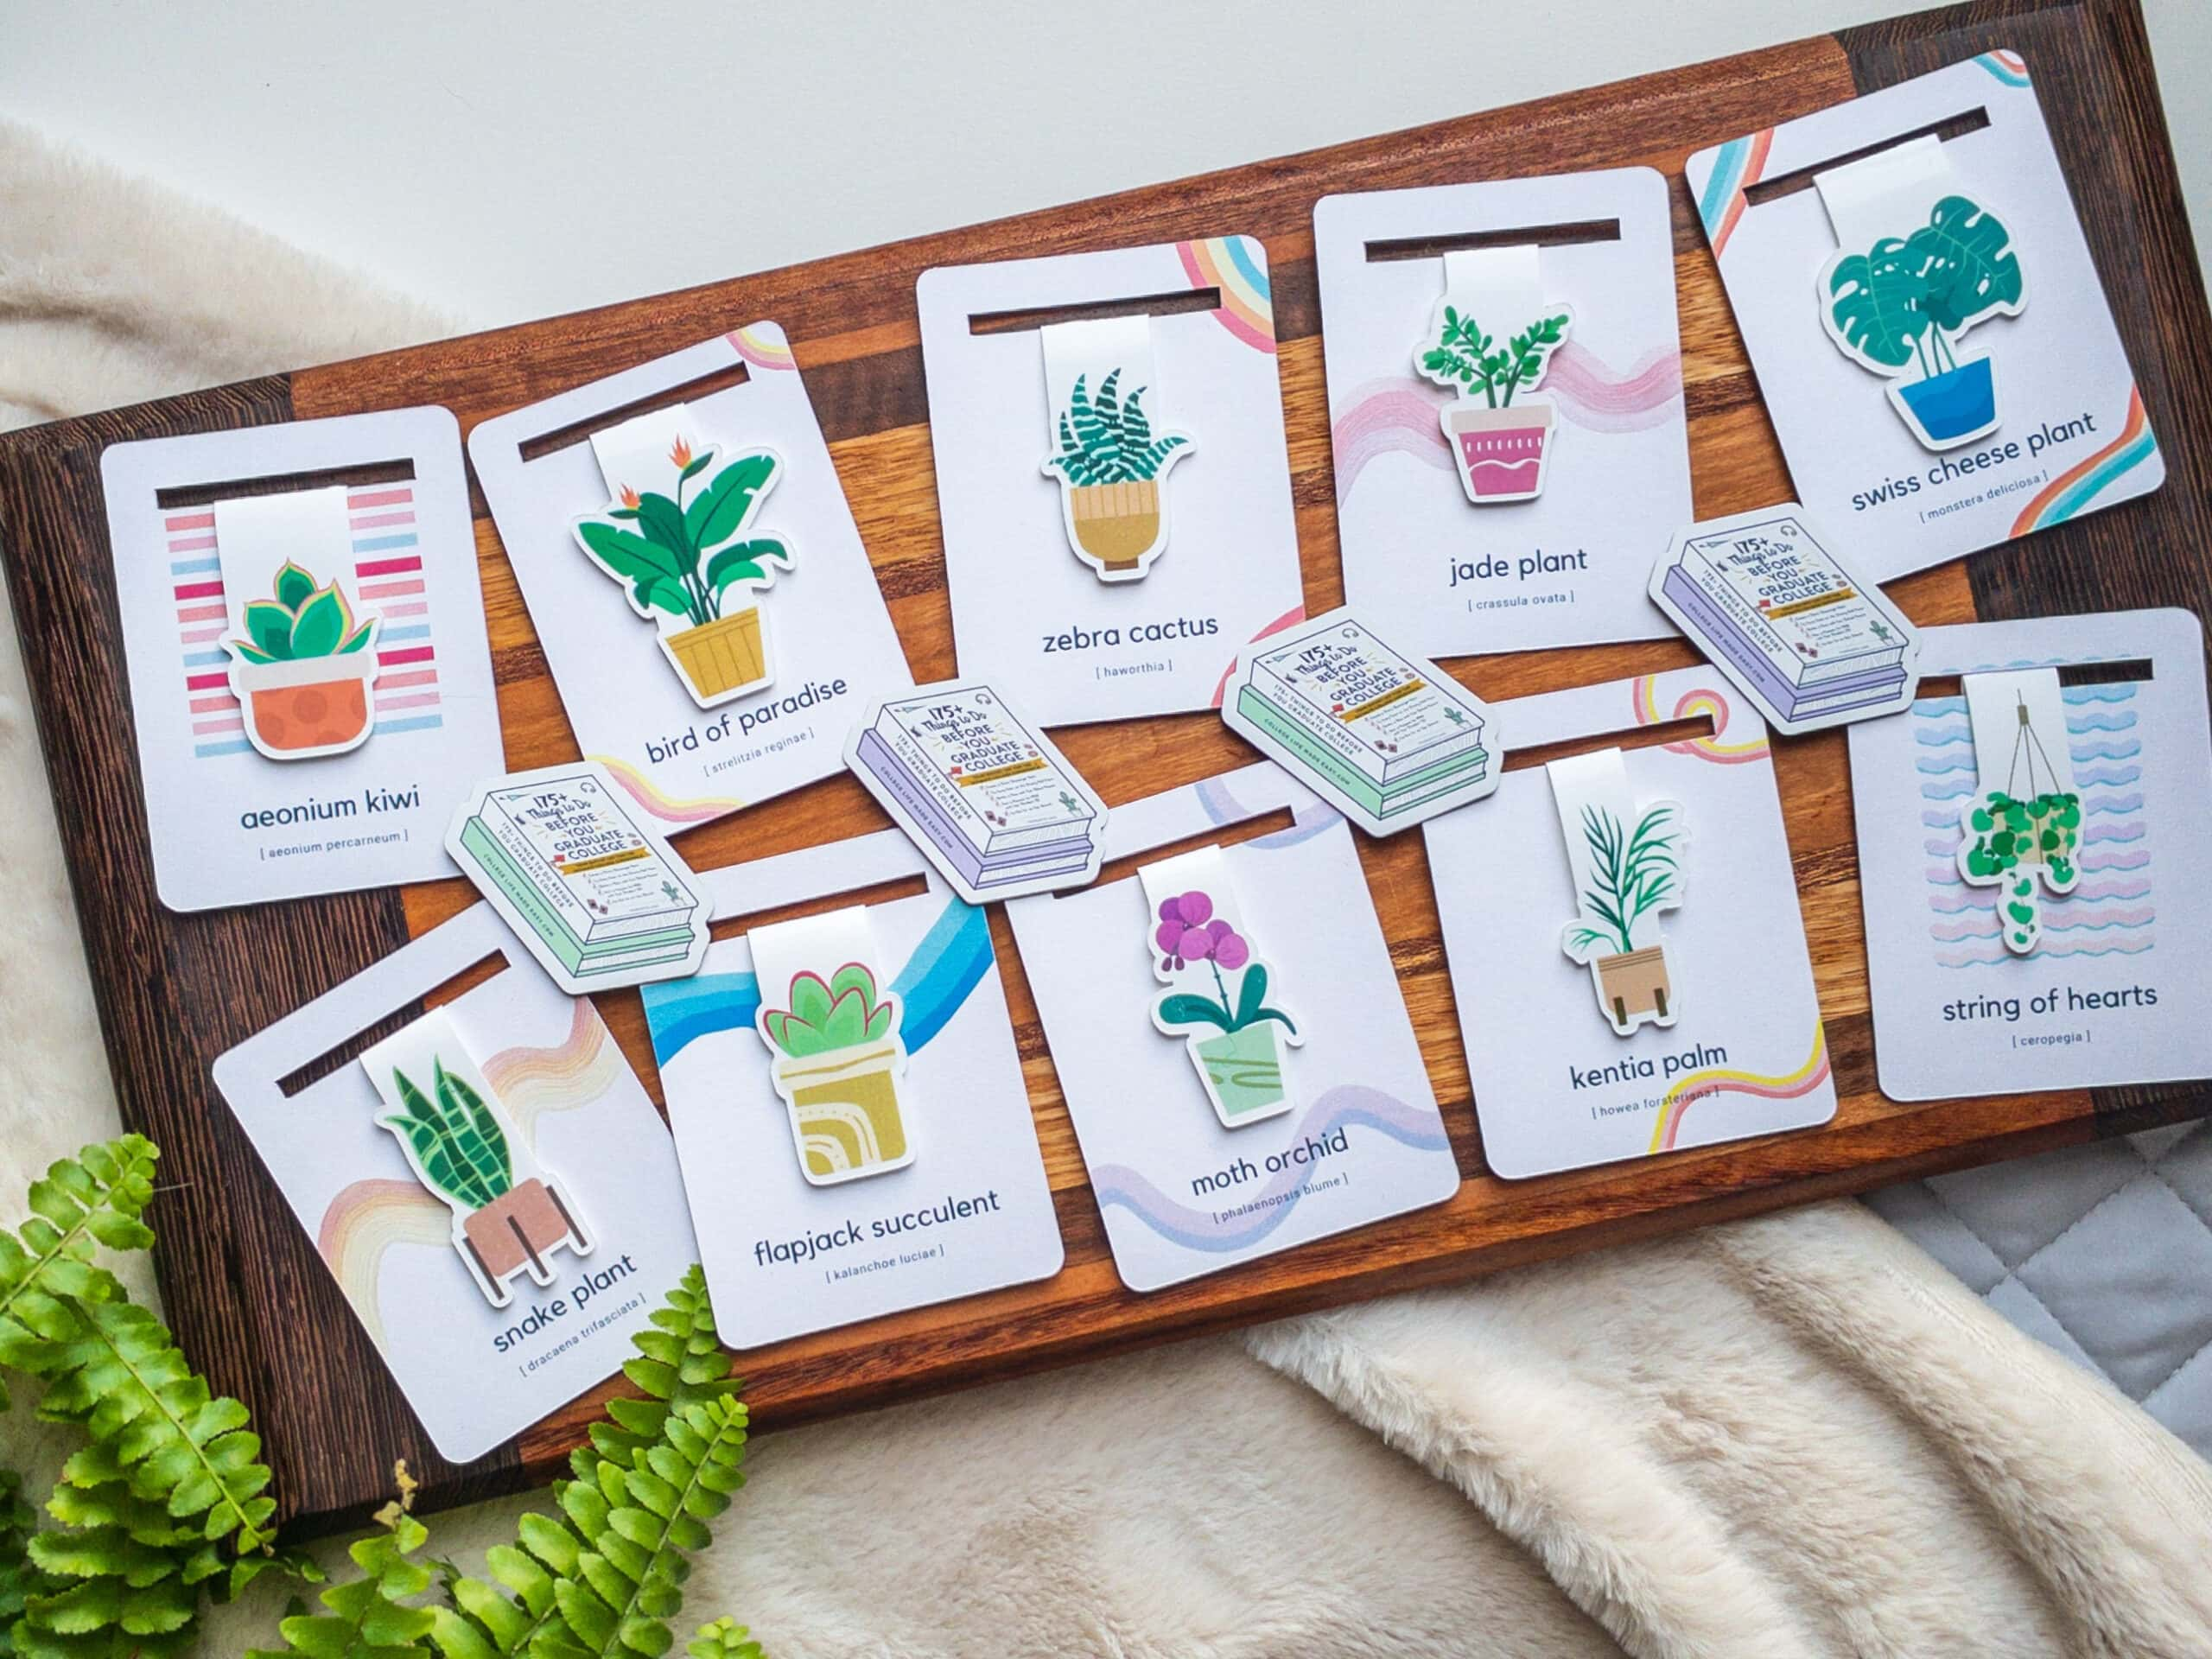 assortment of houseplant bookmarks + mini magnets arranged on charcuterie board with fern leaves in one corner